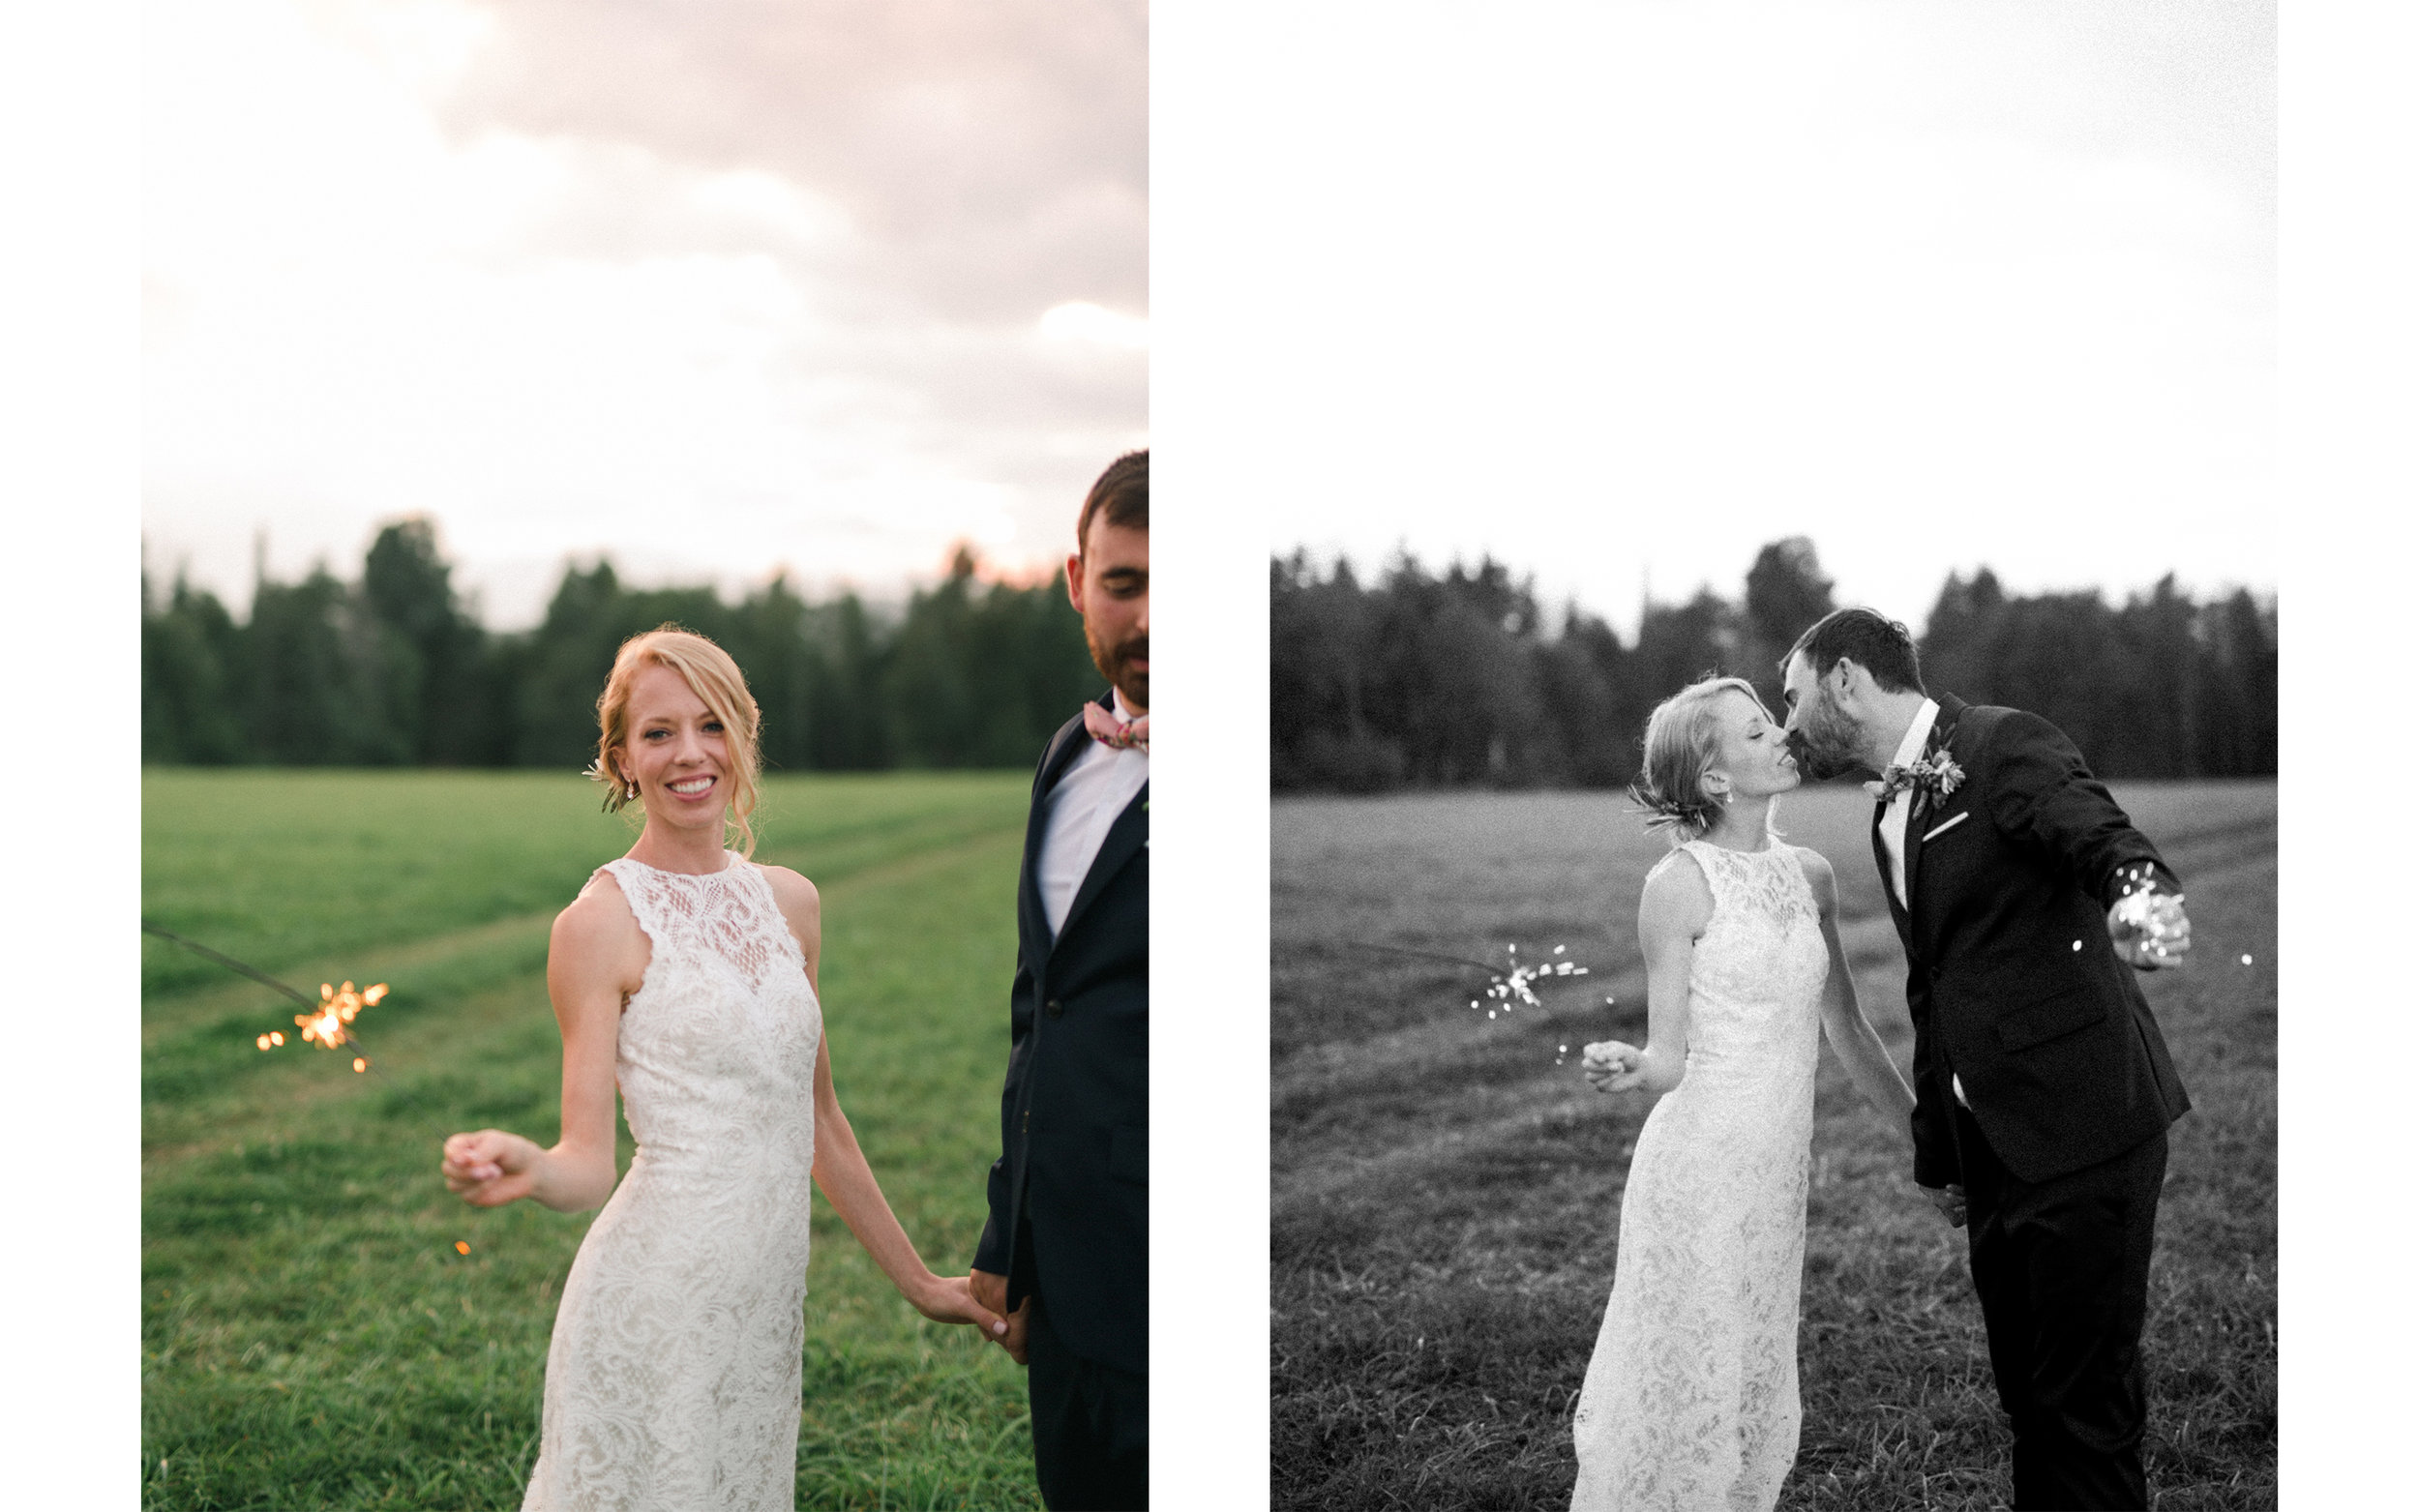 Stowe VT Farm Wedding Fine Art Wedding Photographer_Meg Haley Photographs_060.jpg